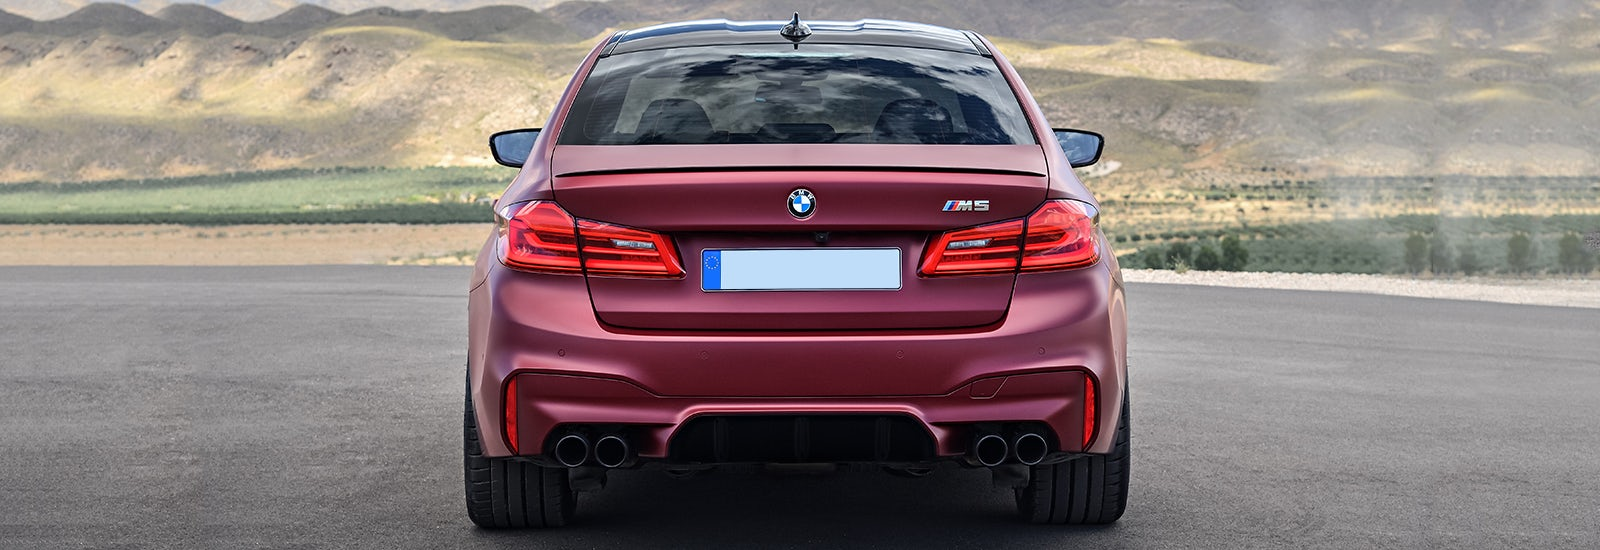 2018 bmw m5 price specs and release date carwow. Black Bedroom Furniture Sets. Home Design Ideas